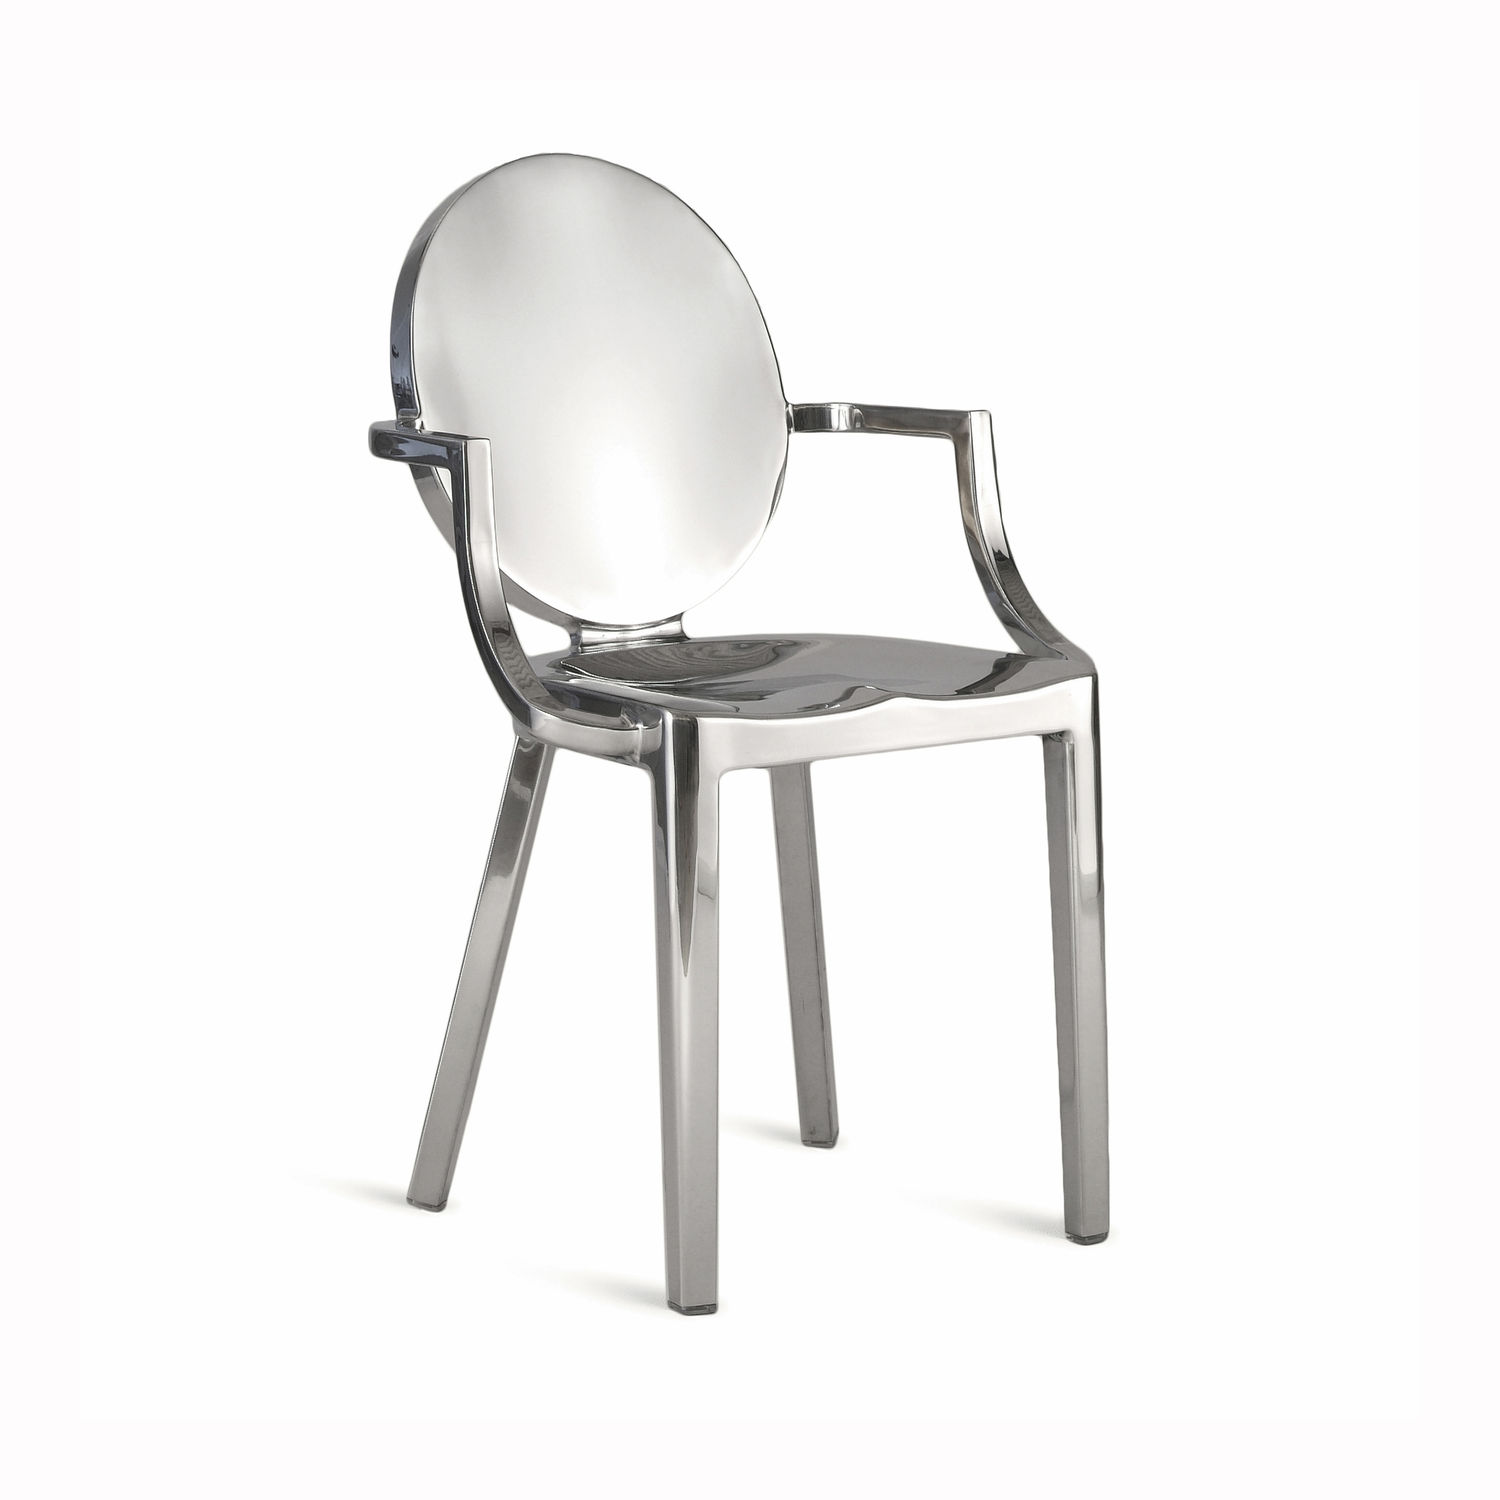 Contemporary chair / medallion / aluminum / by Philippe Starck - KONG :  KONG AP